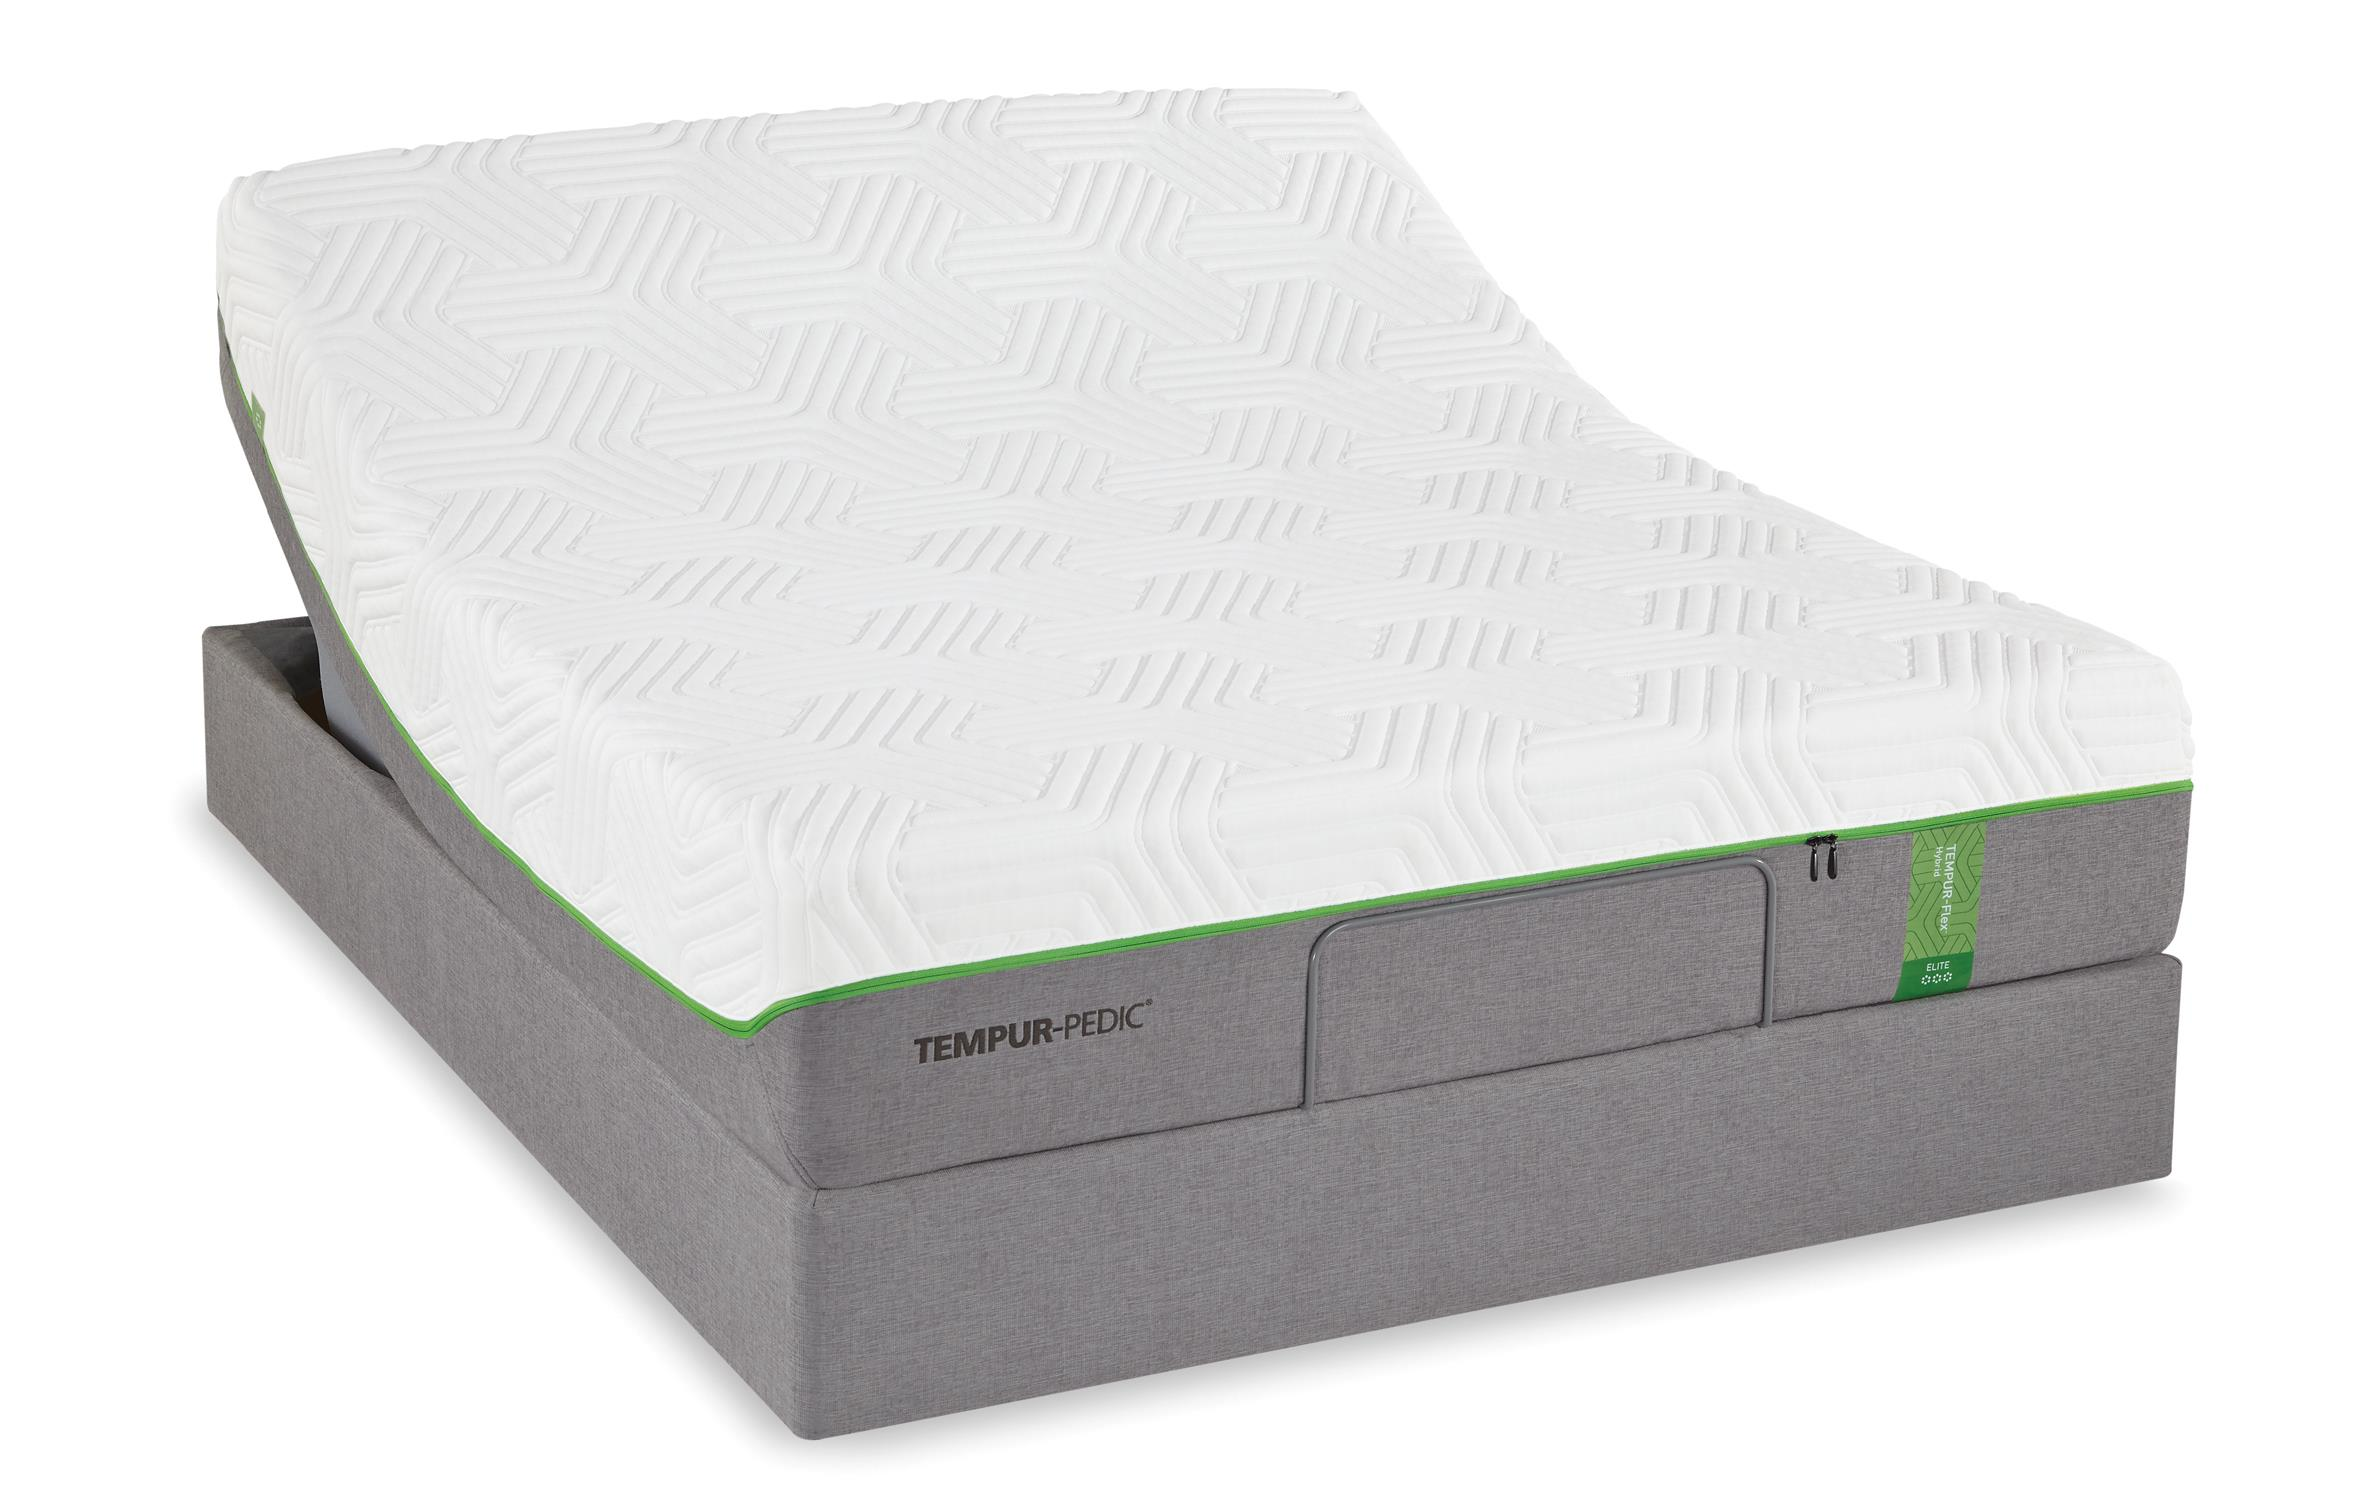 Tempur-Pedic® TEMPUR-Flex Elite Full Medium Soft Plush Mattress Set - Item Number: 10117130+25287130